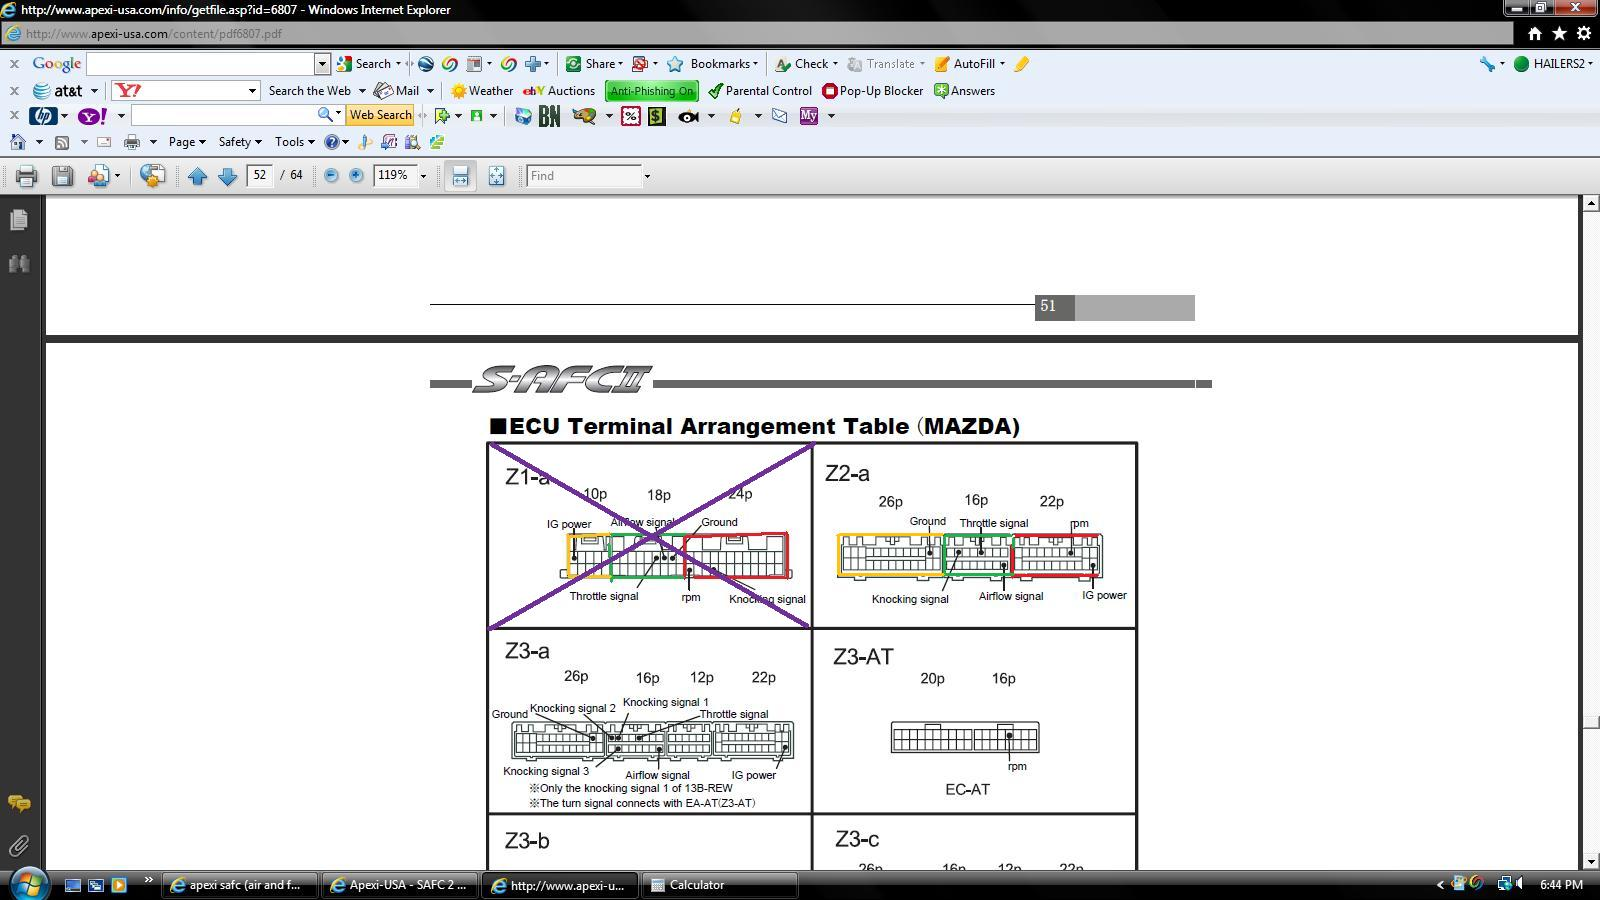 Dorable Apexi Safc Wiring Diagram Inspiration - Wiring Schematics ...